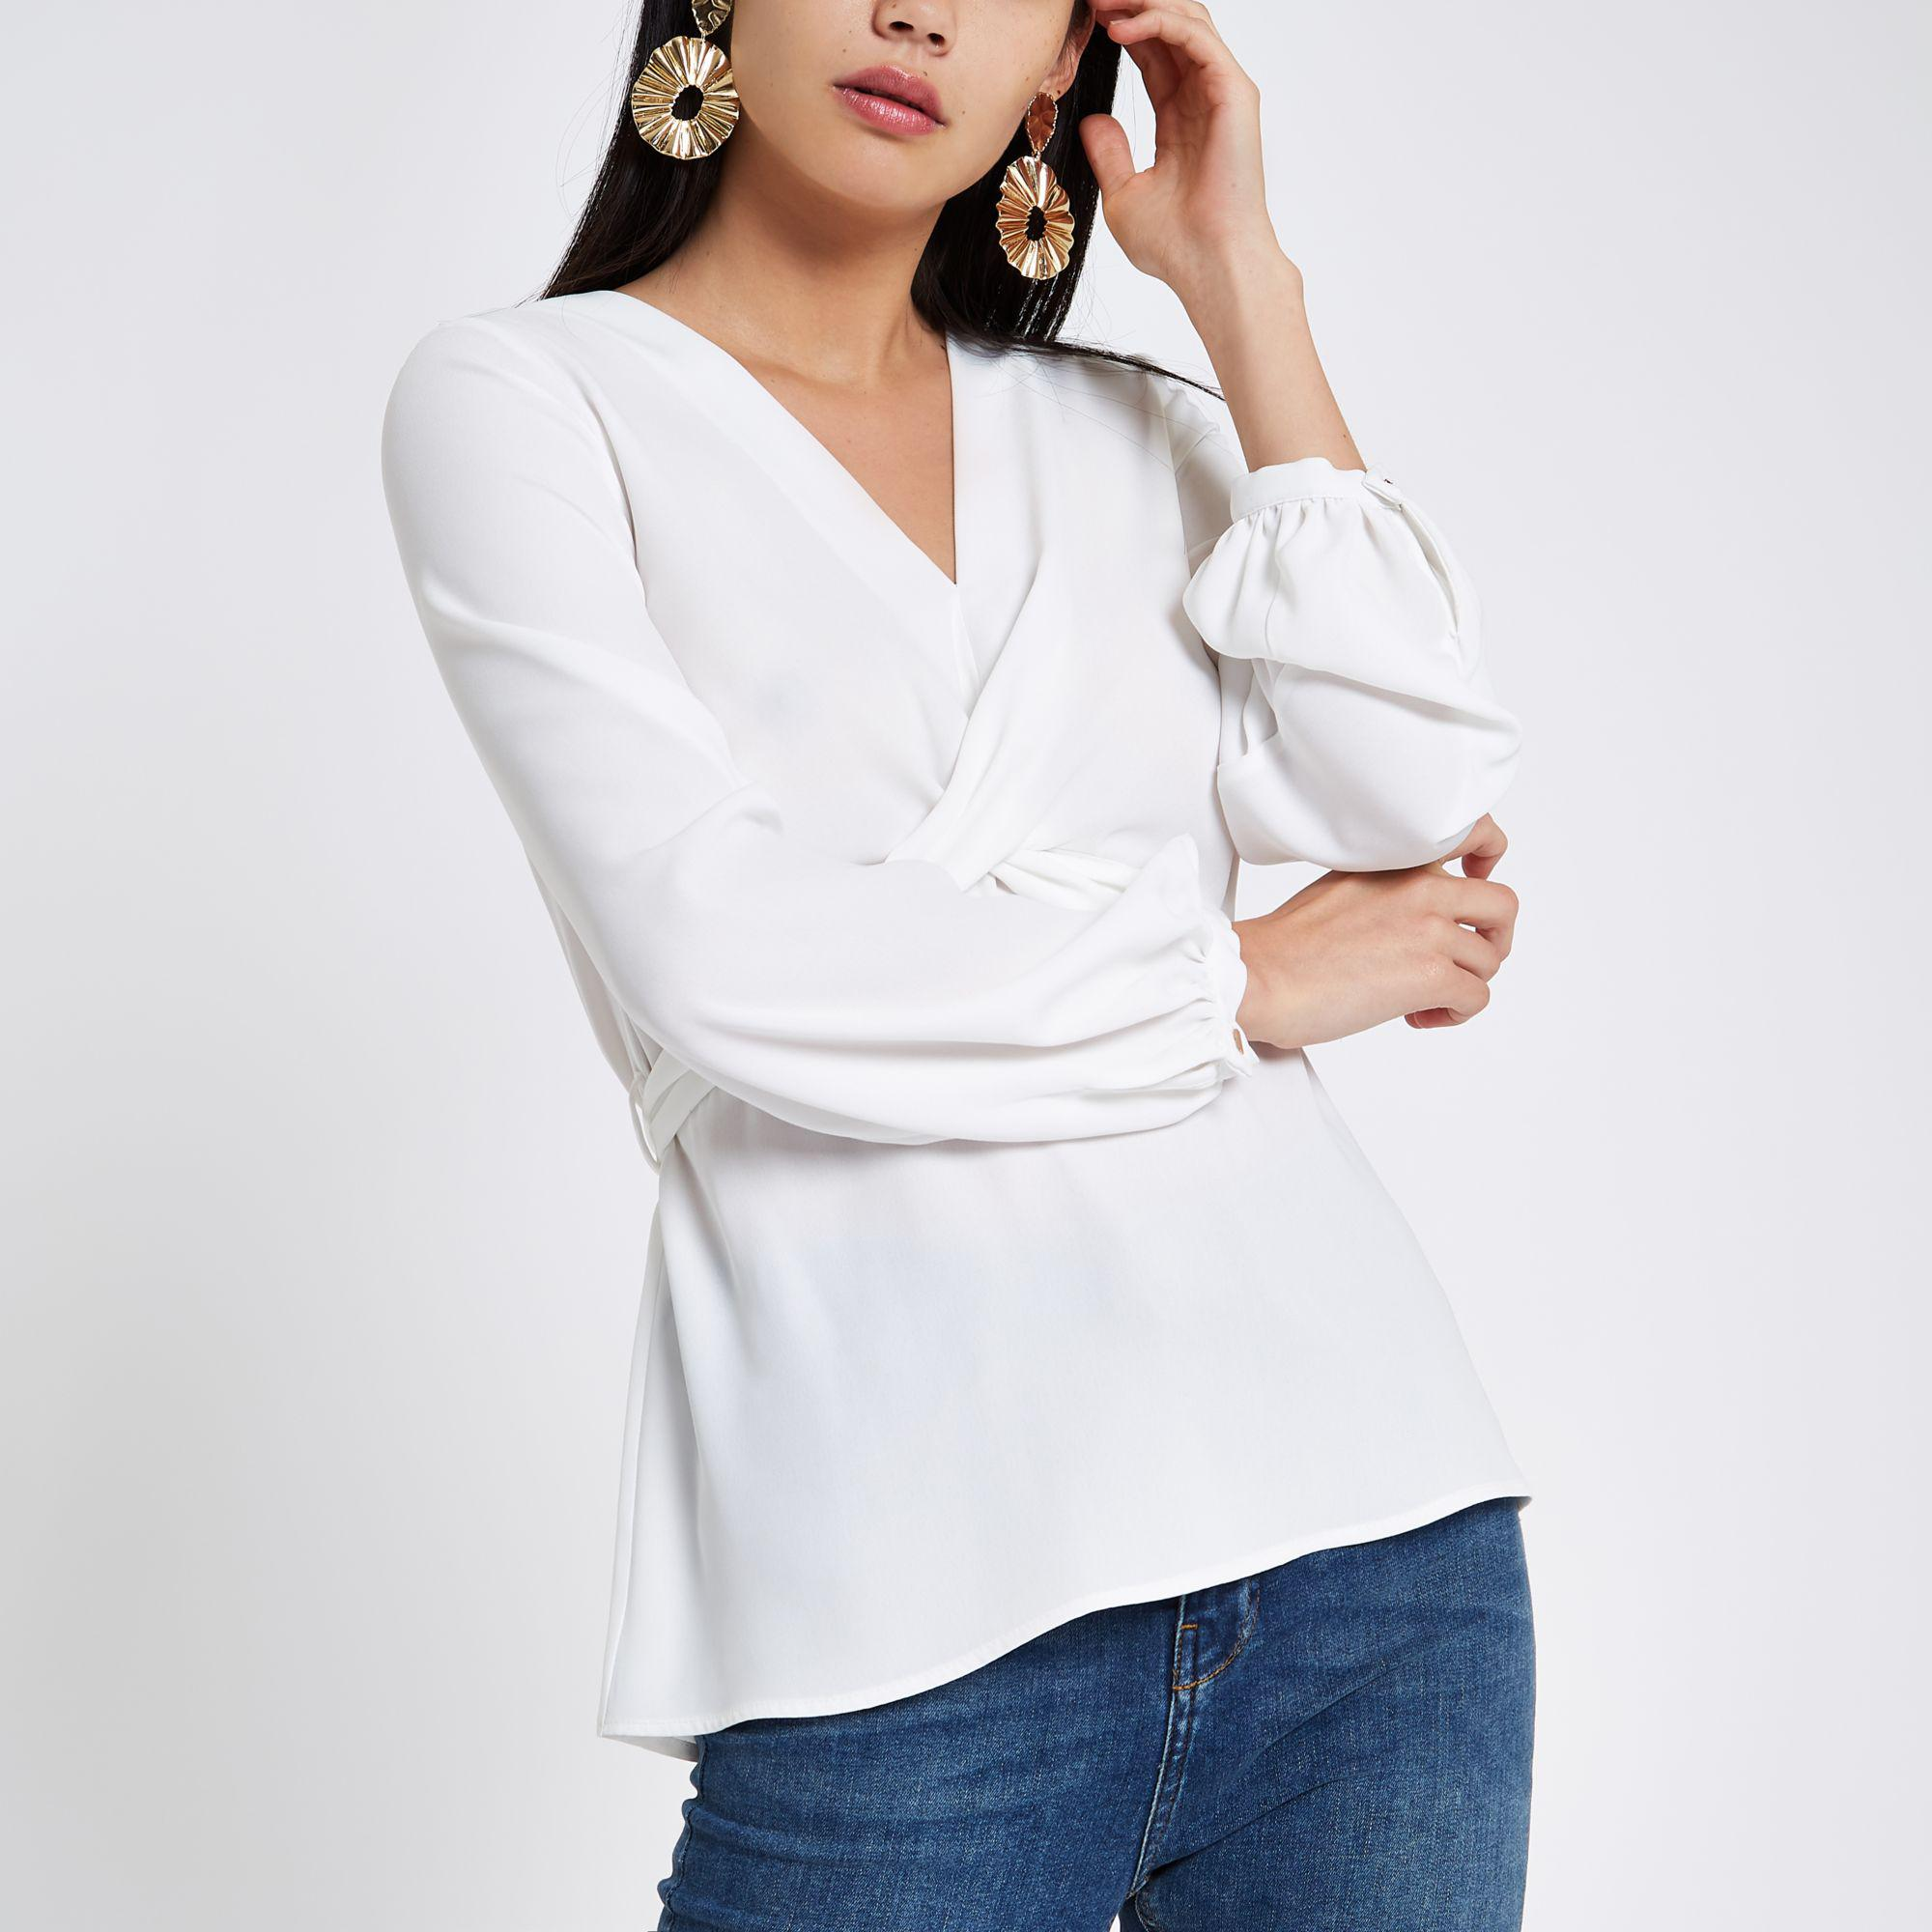 dc869ba496712 Lyst - River Island White Cross Front Tie Back Blouse in White